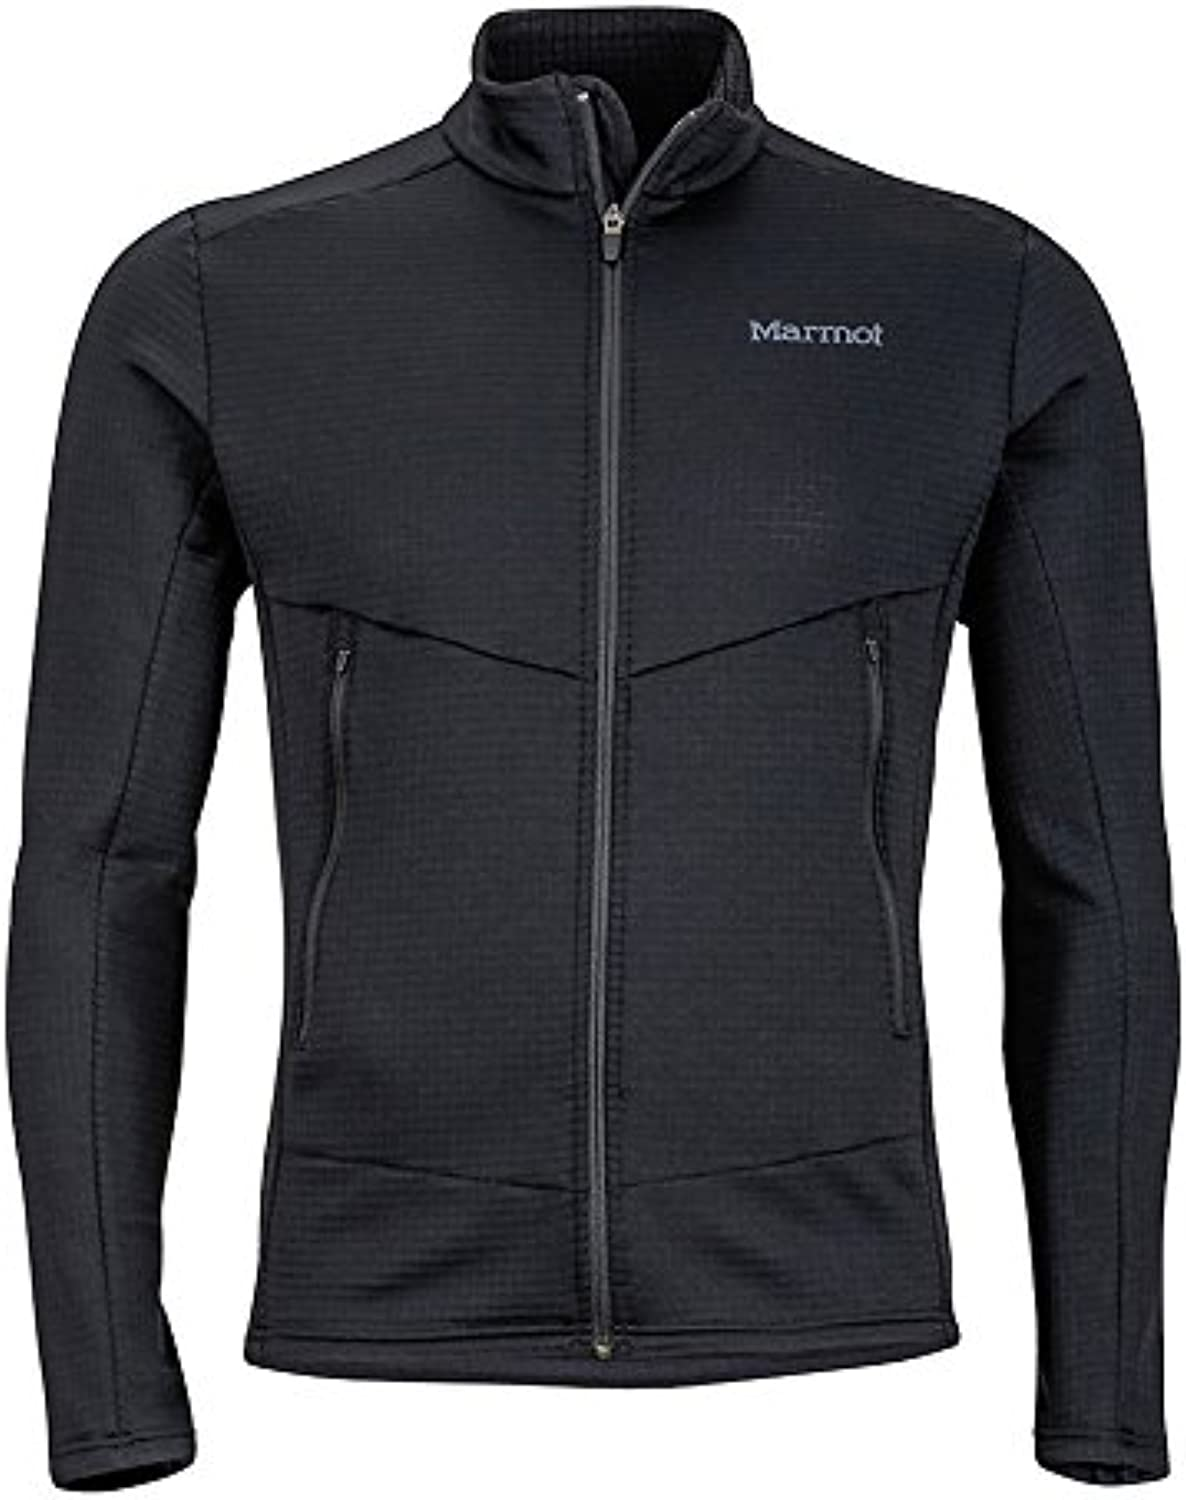 Marmot Skyon Jacket Men black 2018 winter jacket